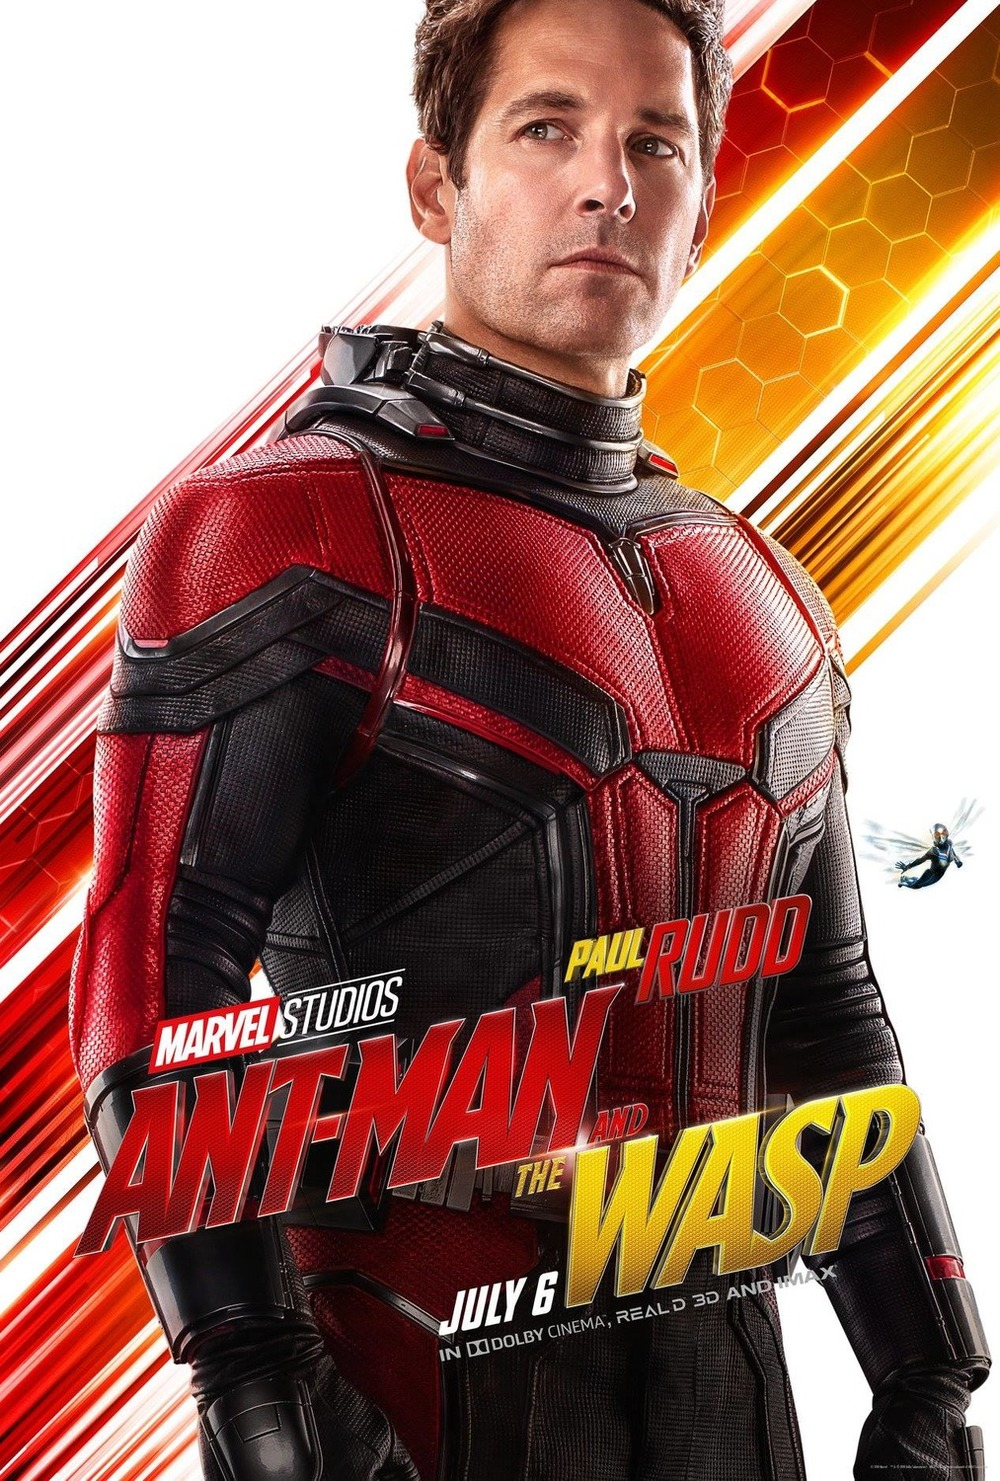 Ant-Man and the Wasp DVD Release Date | Redbox, Netflix ...